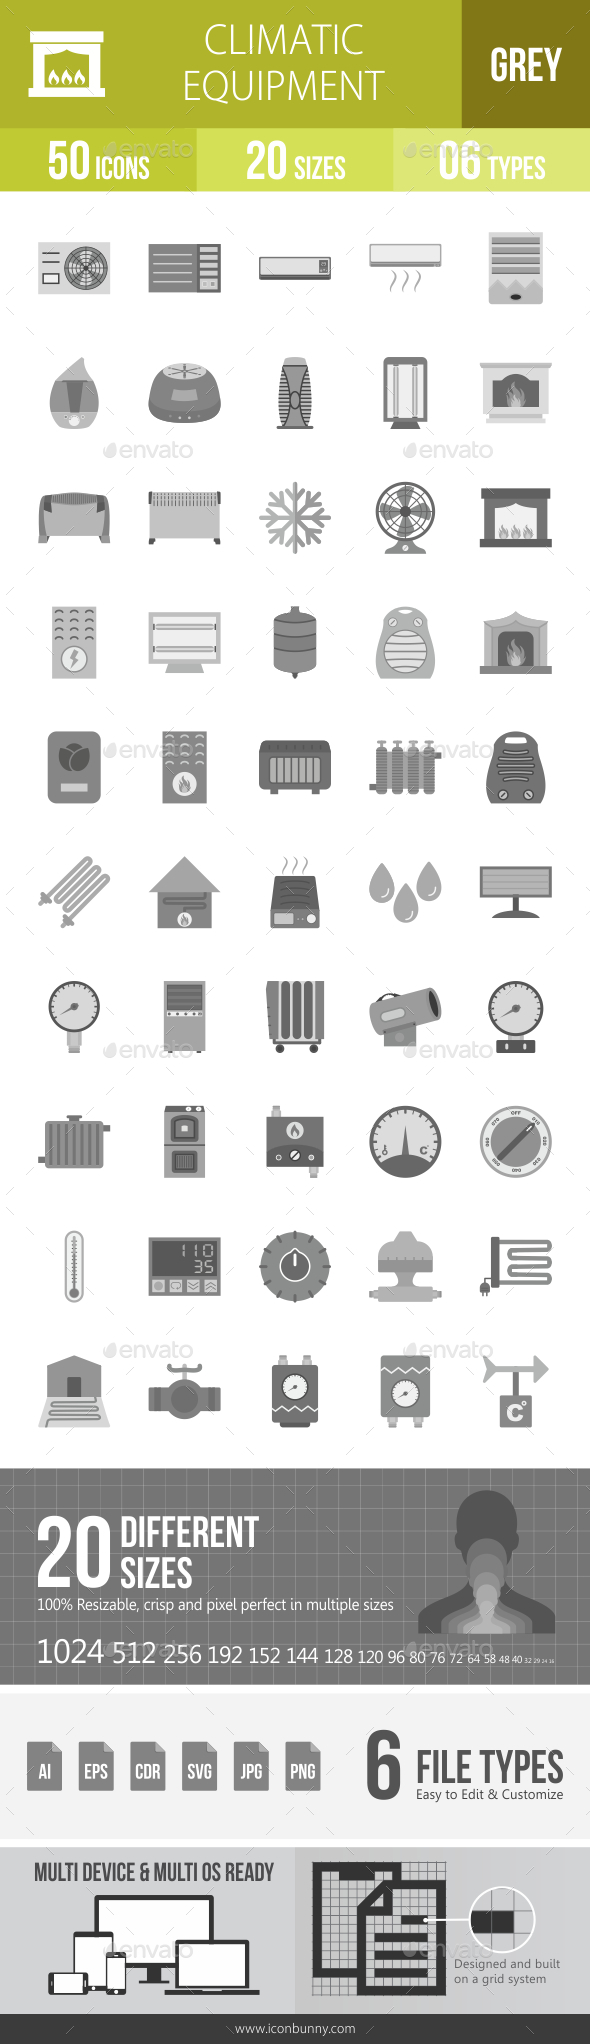 Climatic Equipment Greyscale Icons - Icons